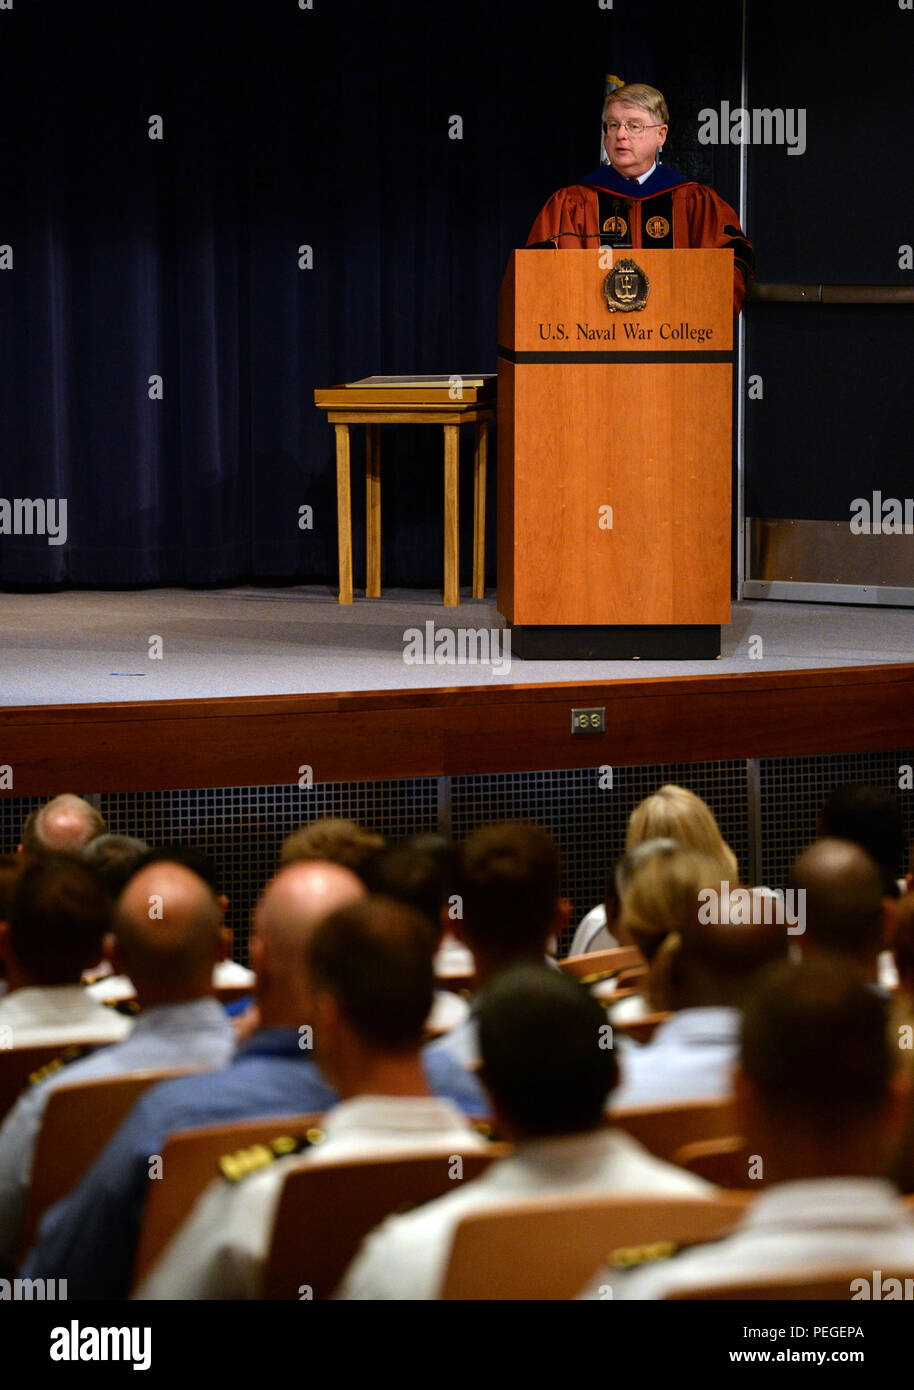 Stanley Carpenter, professor and historian for U.S. Naval War College (NWC), provides the history of NWC to students, staff, faculty and guests during a convocation ceremony kicking-off the 2015-2016 school year. During the ceremony, Rear Adm. P. Gardner Howe III, president, NWC, presented Adm. Michael S. Rogers, commander, U.S. Cyber Command, director, National Security Agency, chief, Central Security Service, the 2015 Distinguished Graduate Leadership Award. The award honors NWC graduates who have earned positions of prominence in the national defense field.  (U.S. Navy photo by Chief Mass C - Stock Image